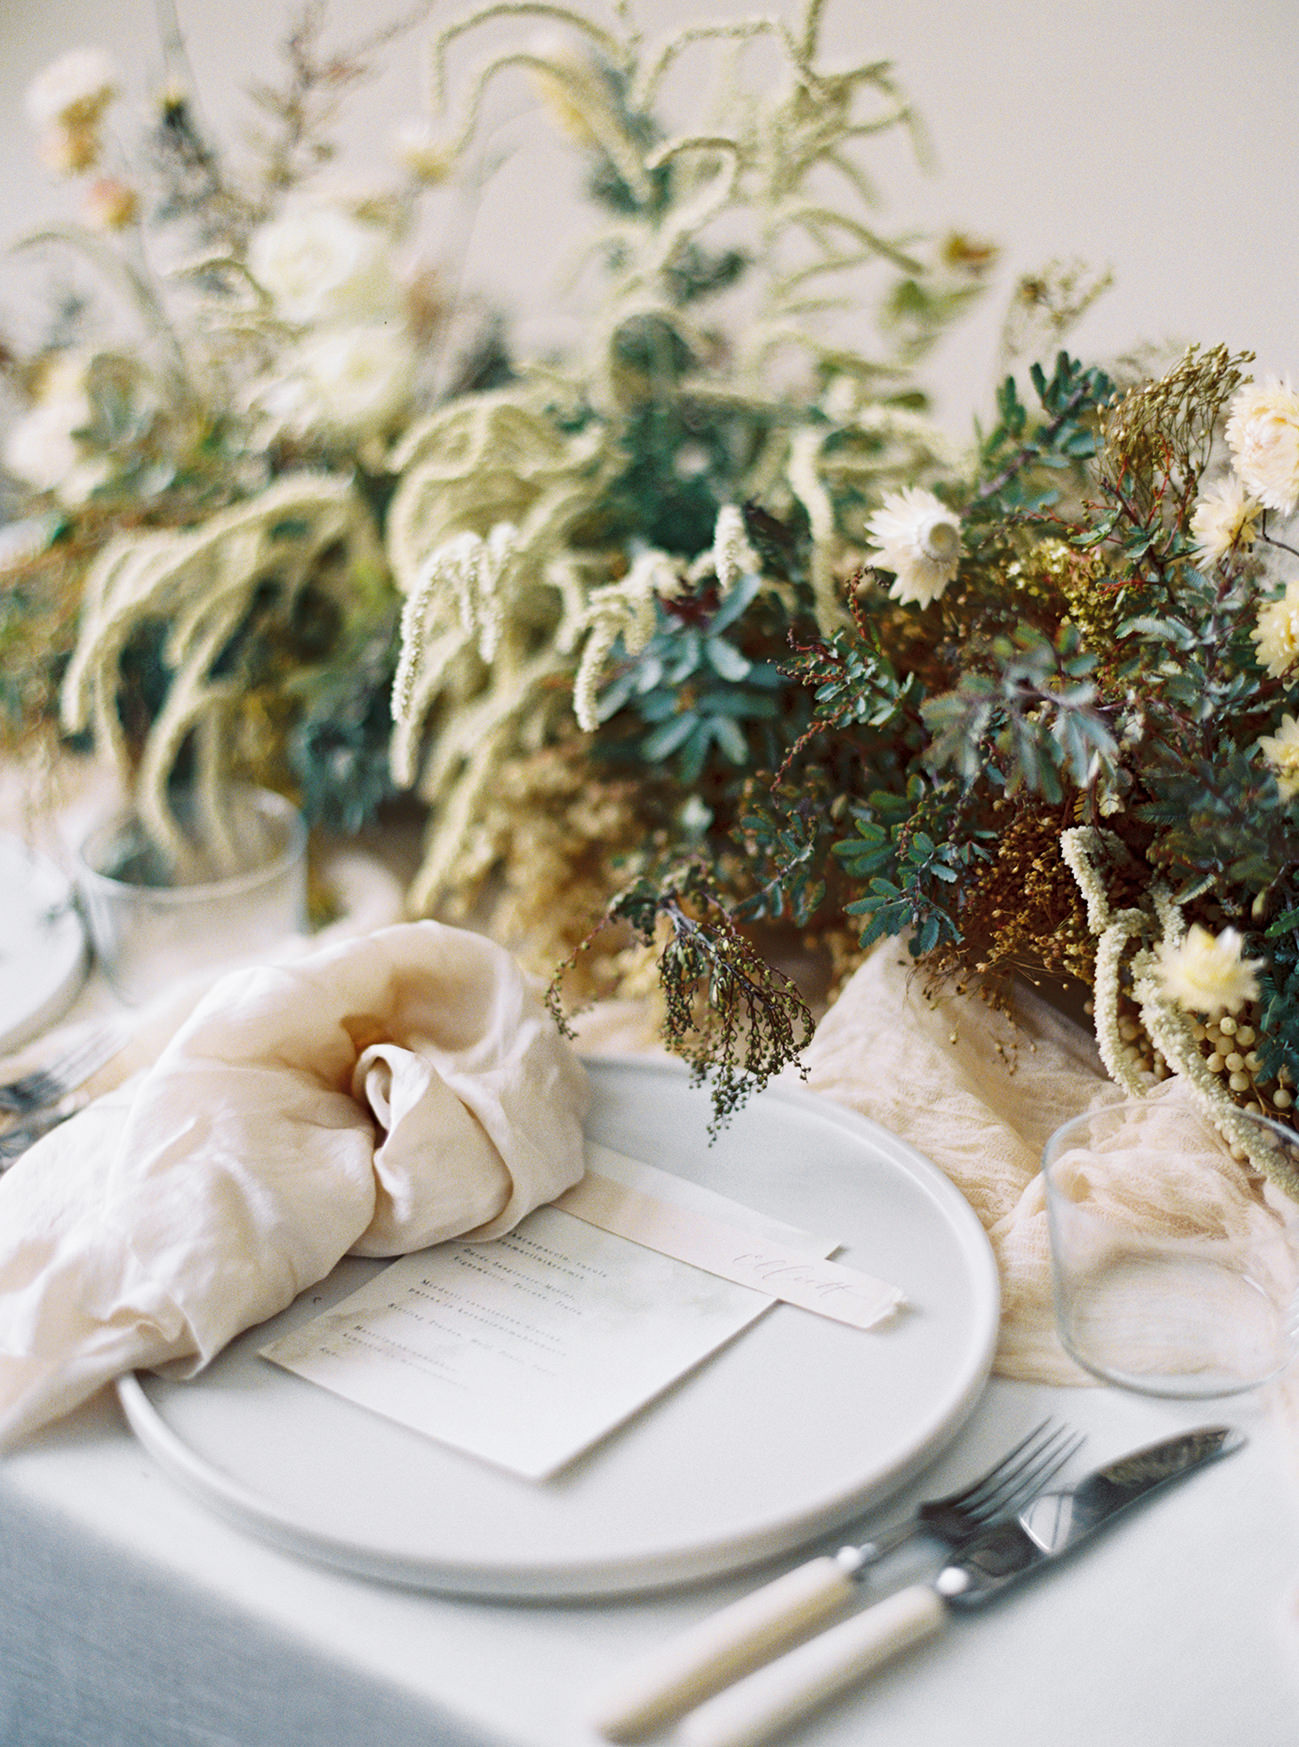 Bridal Inspiration, Wedding Bouquet, Hääkuvaus, Film Wedding Photographer, Table Setting Inspiration, Stationery, Dried Flowers, www.nordandmae.com, www.susannanordvall (21).jpg